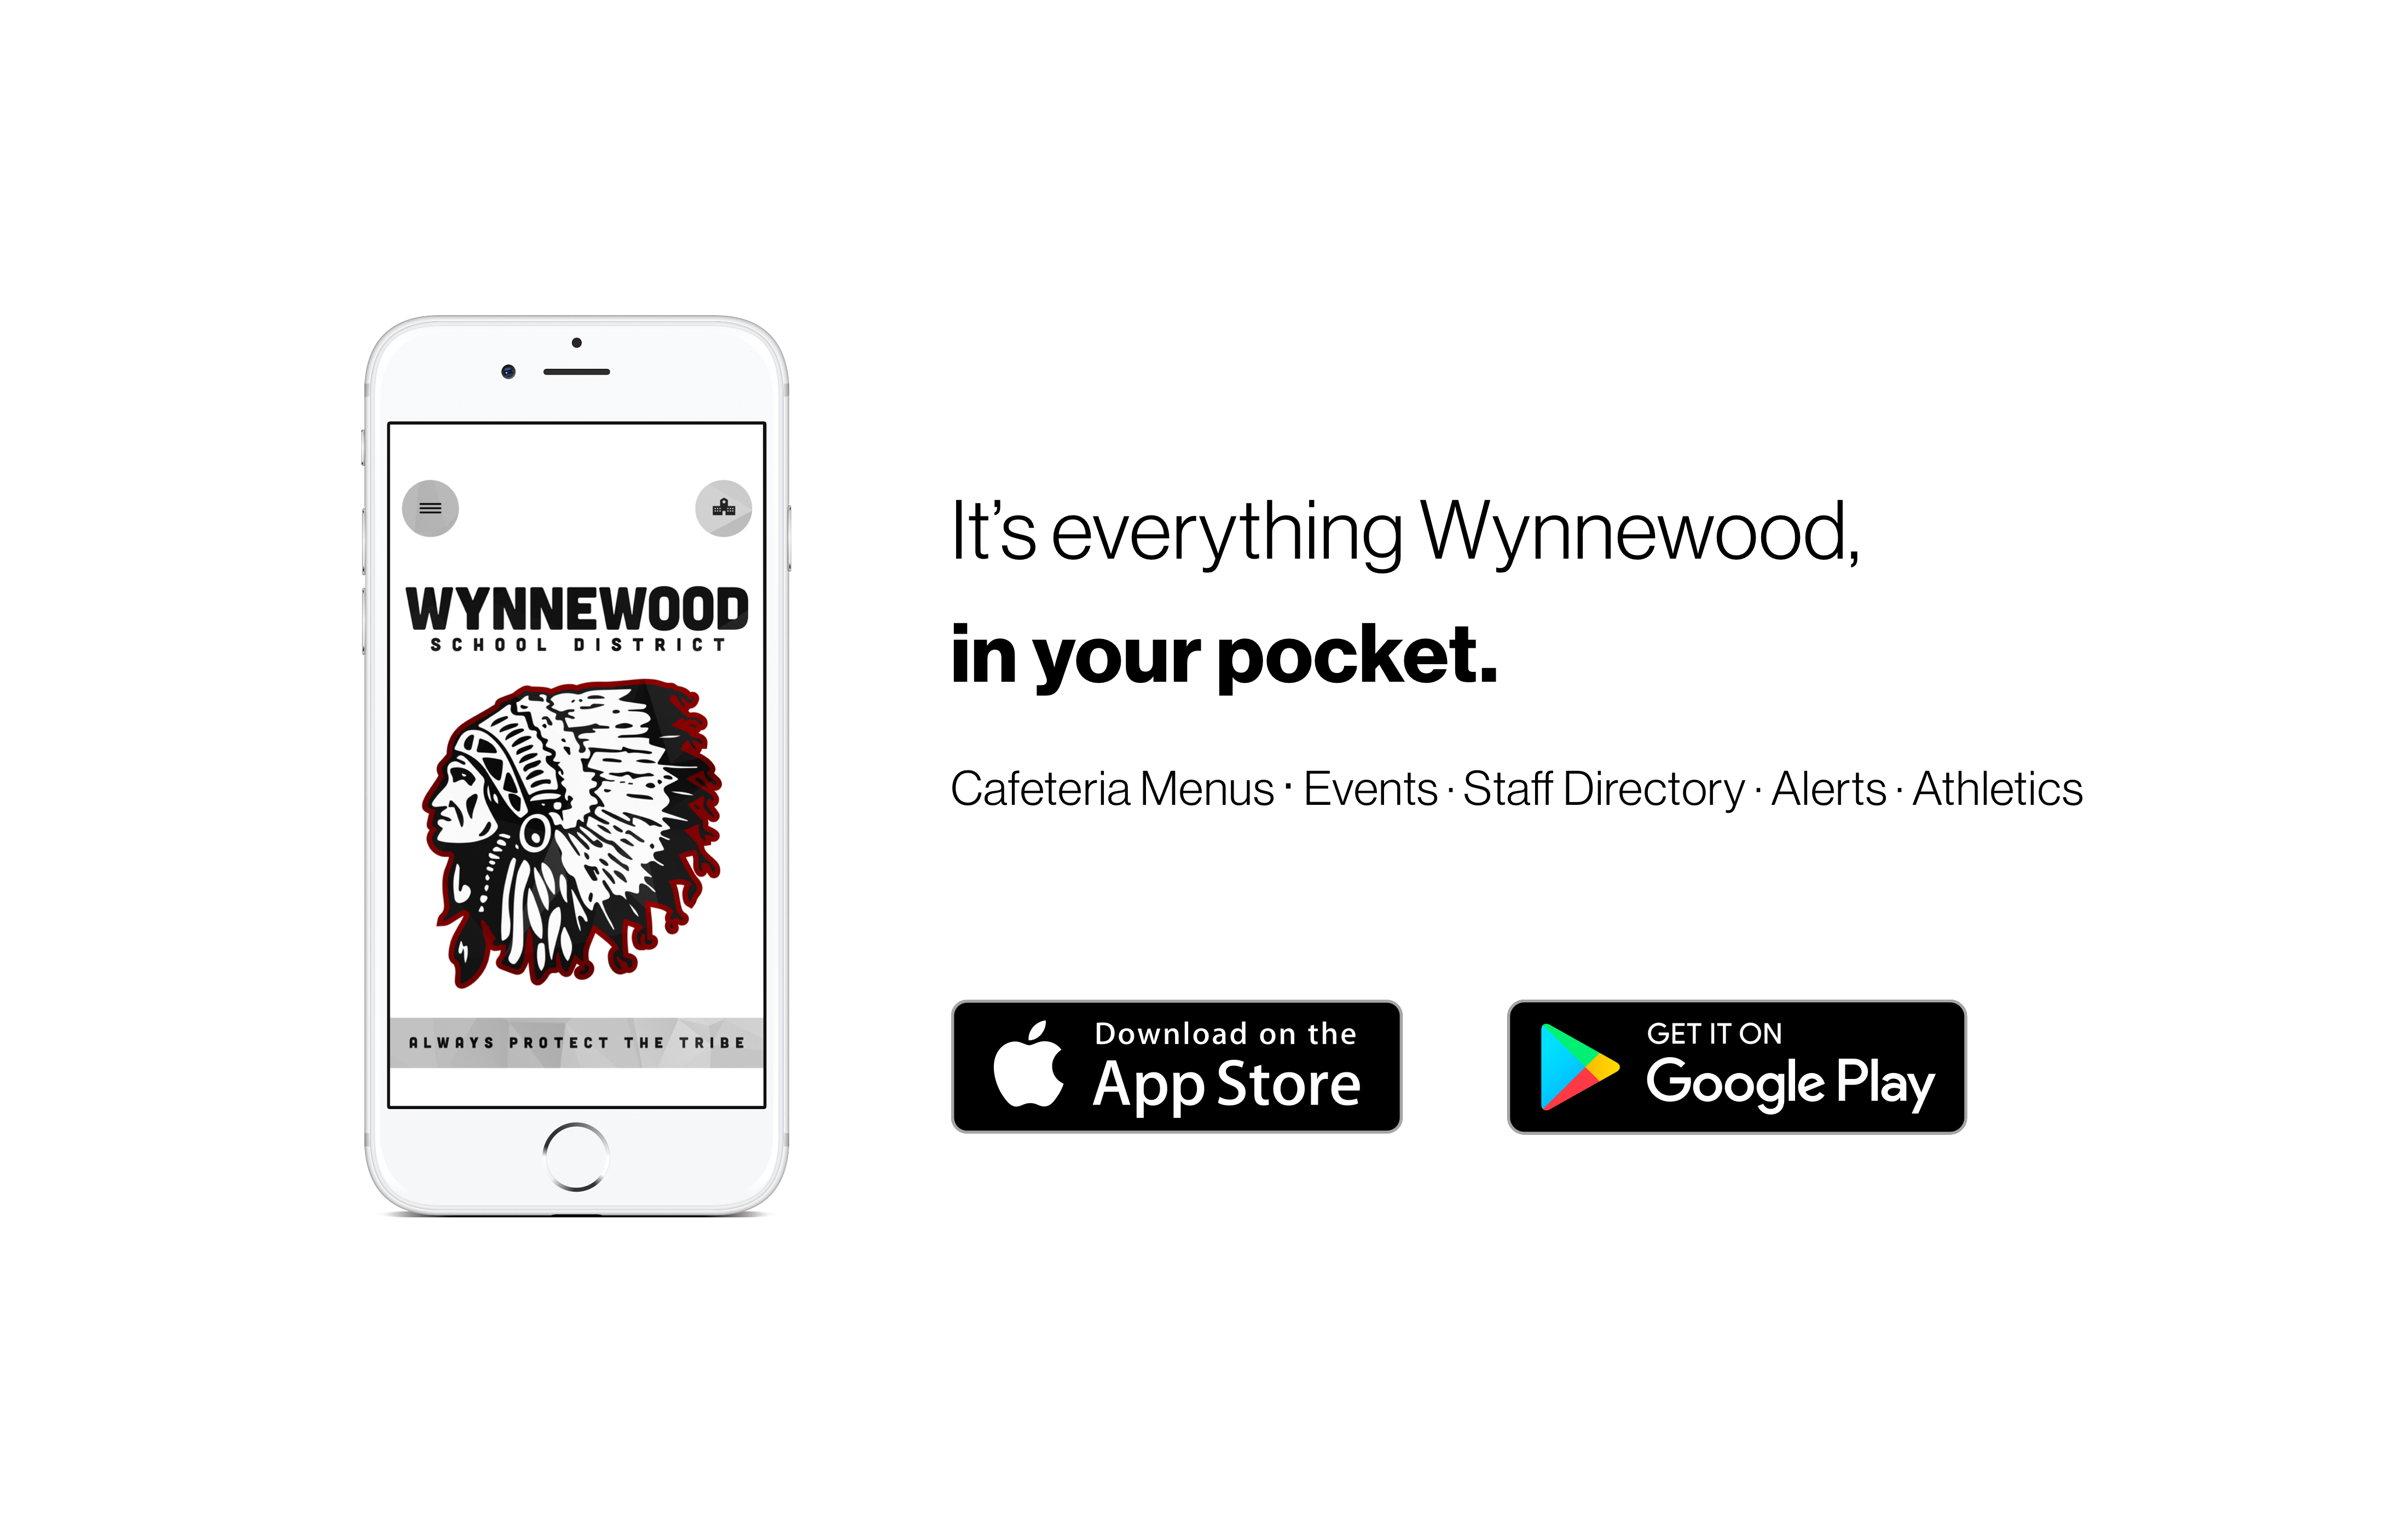 It's everything Wynnewood in your pocket.